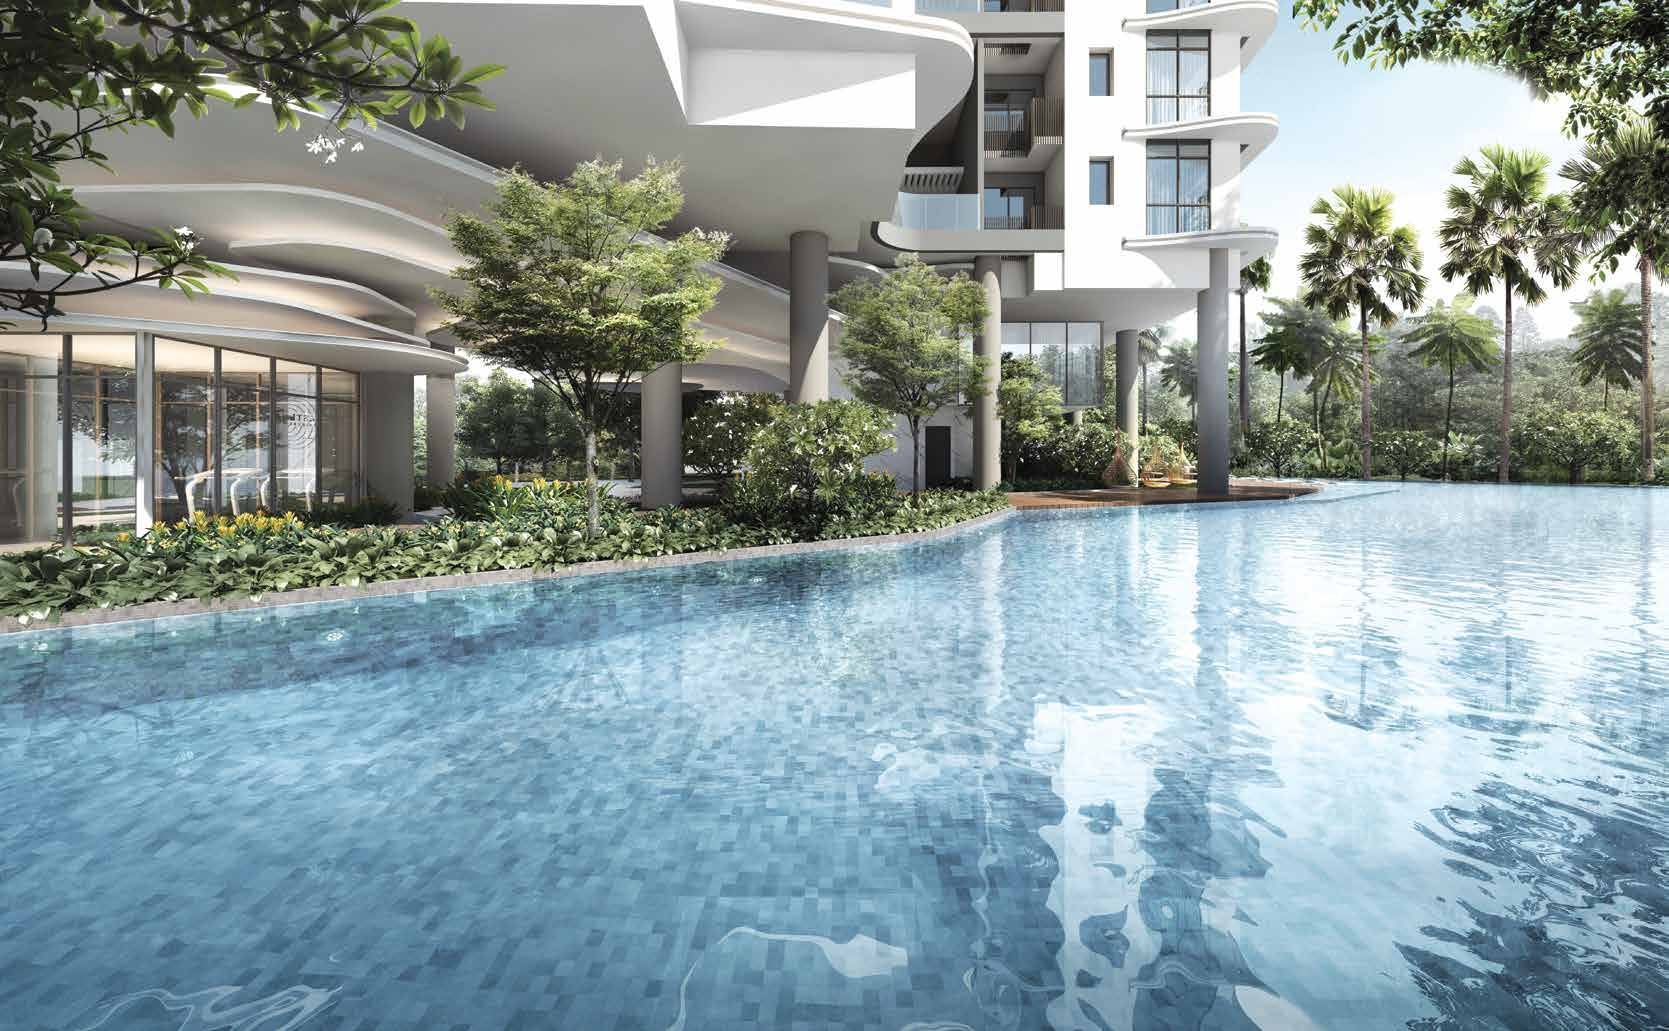 Artist's Impression . Coastline Residences Condominium Pool & Gym Overlooking Pool